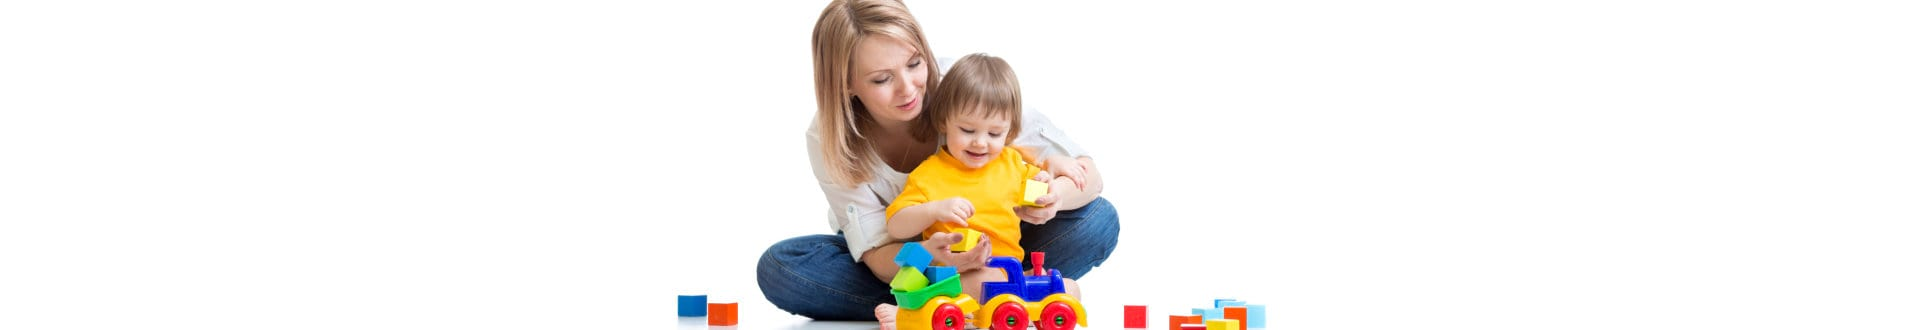 woman with little child playing toys